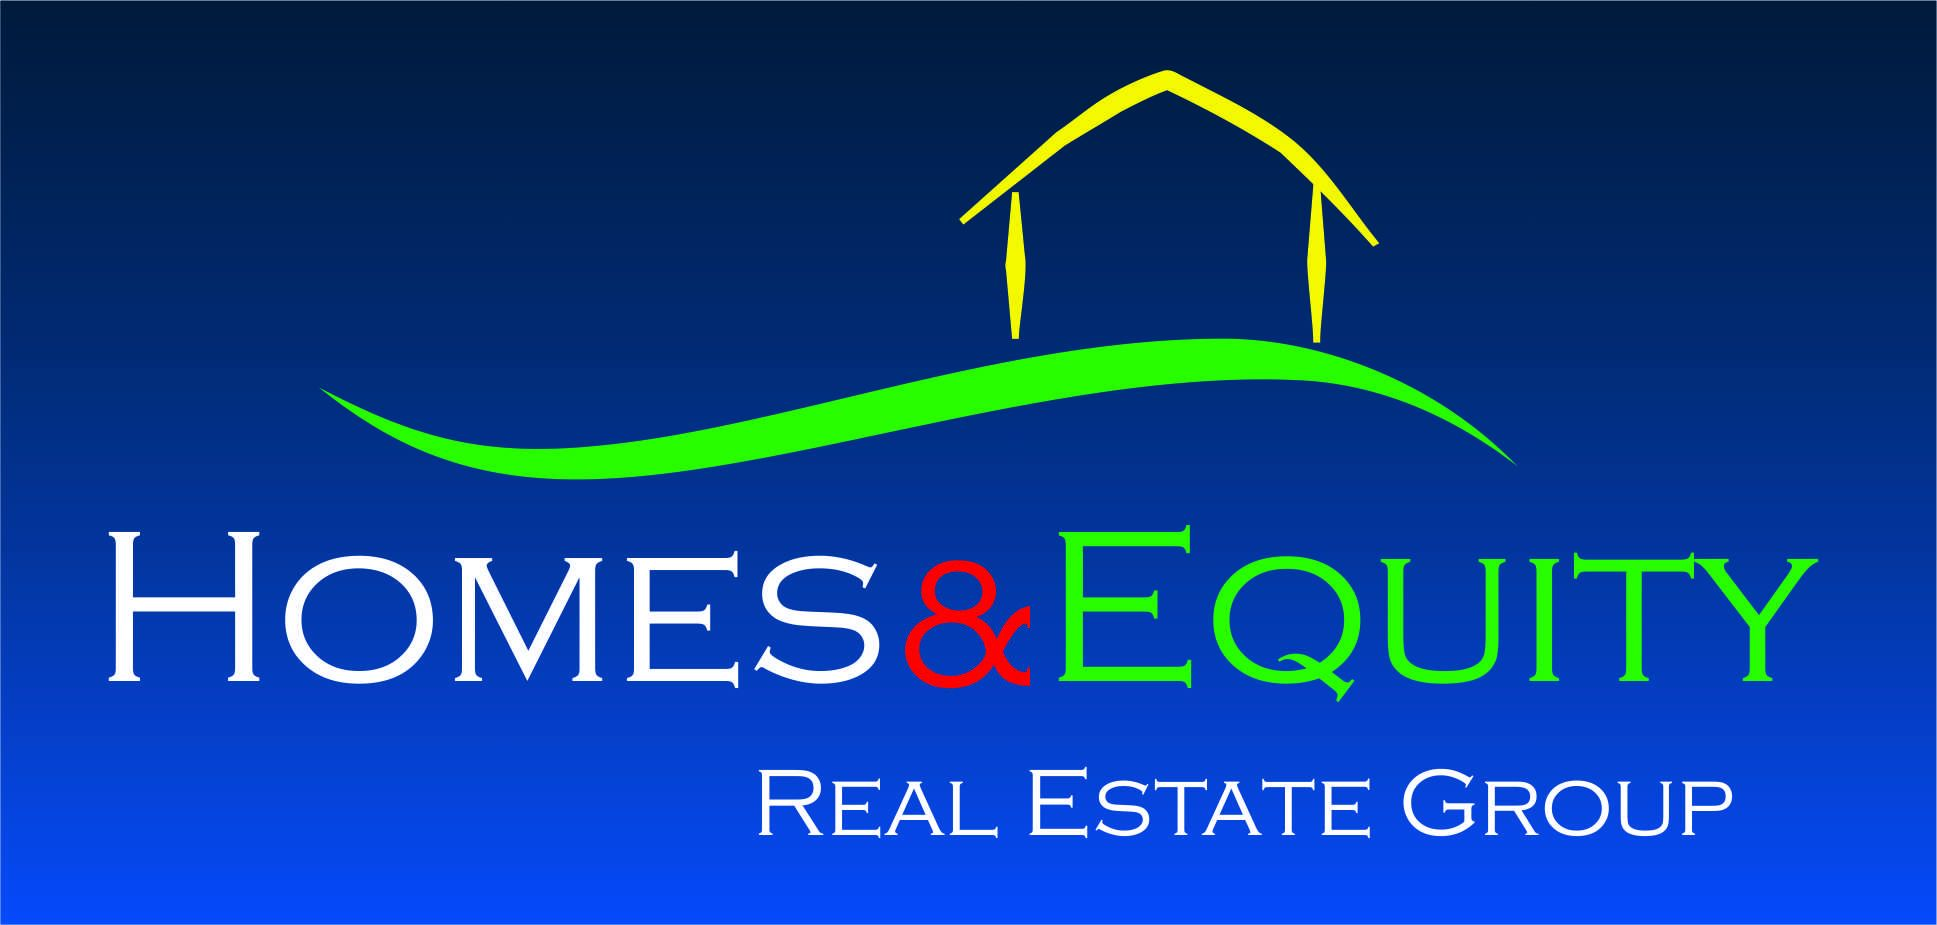 Homes & Equity Real Estate Group